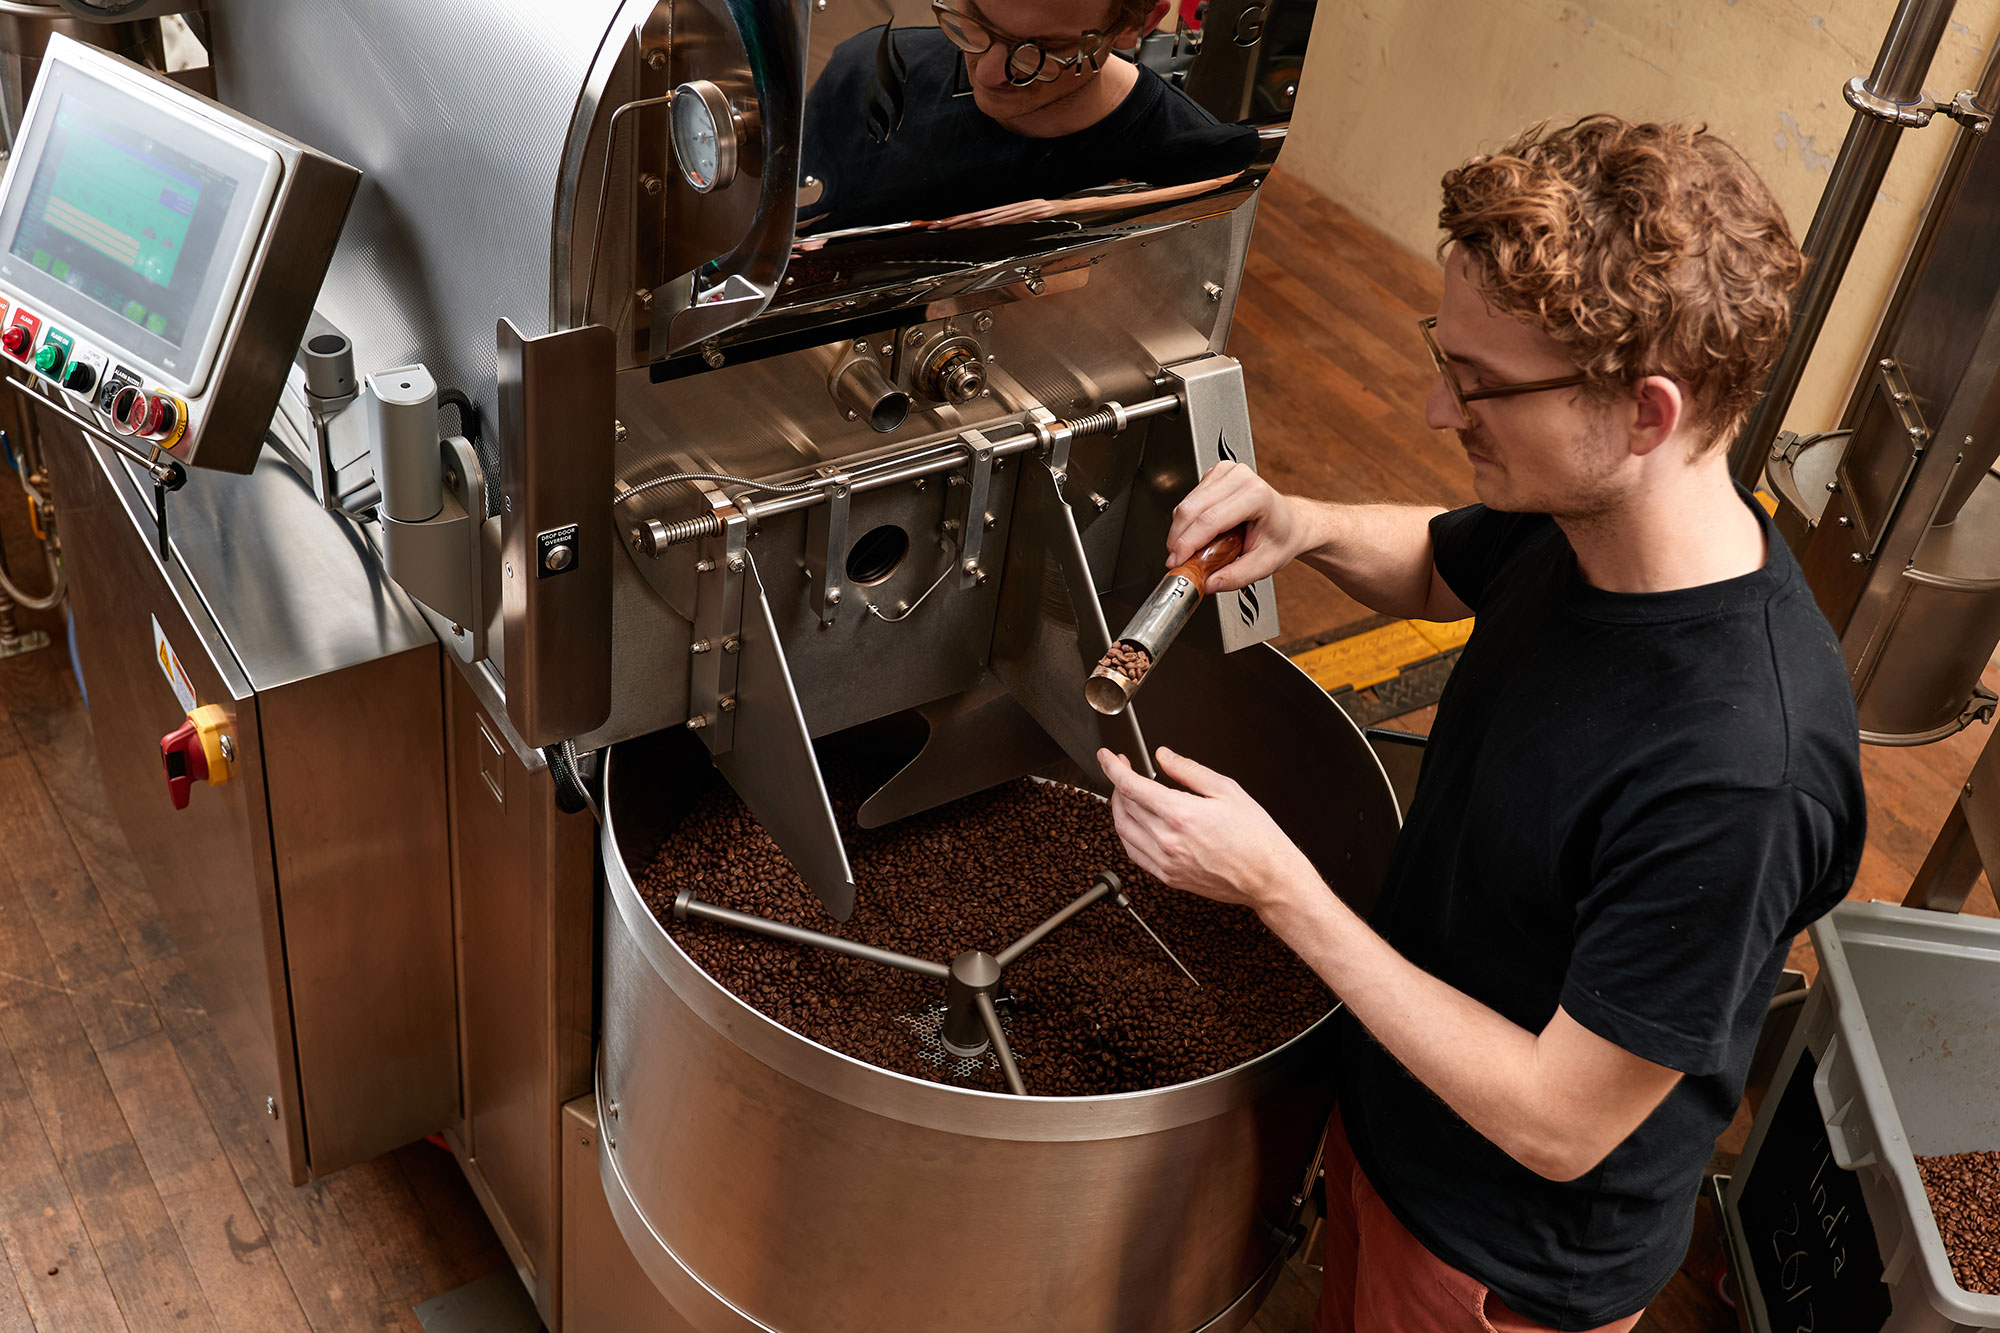 This image ViCafe_Roastery_050820_P1001149-1.jpg is for visual improvements for page ViCAFE HOME – WELCOME